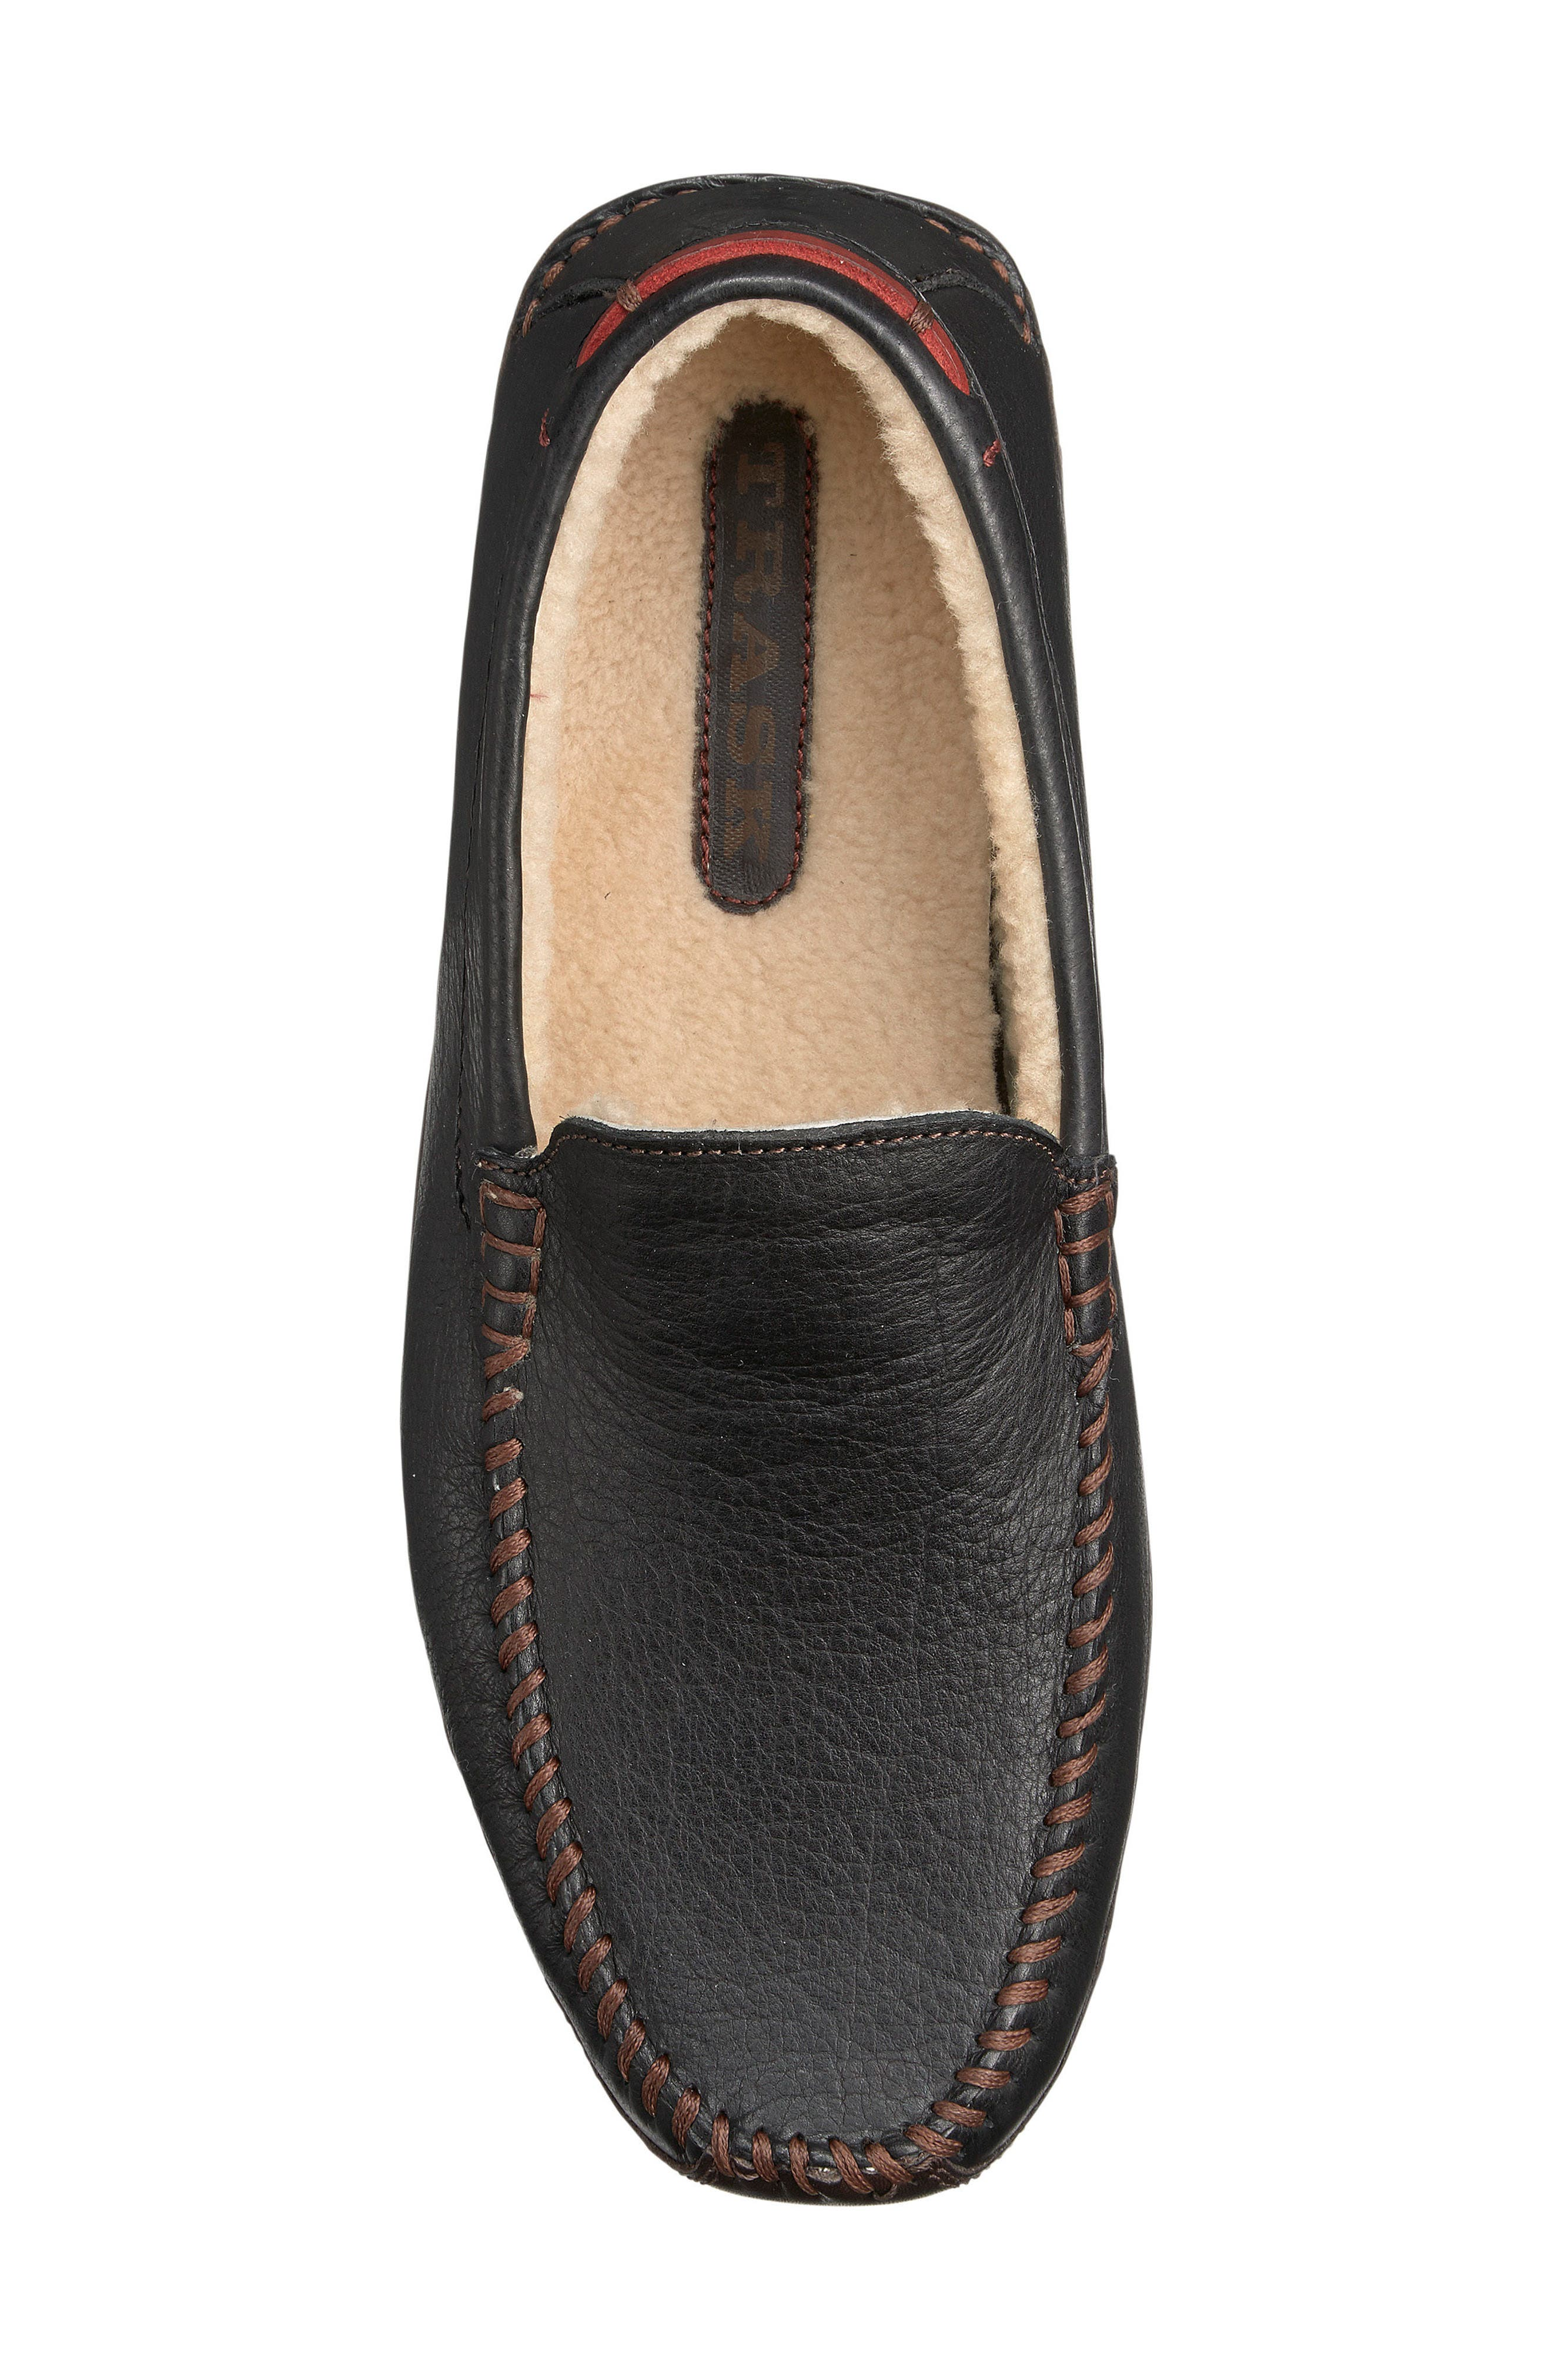 TRASK, Denton Driving Shoe with Genuine Shearling, Alternate thumbnail 3, color, BLACK LEATHER/ SHEARLING